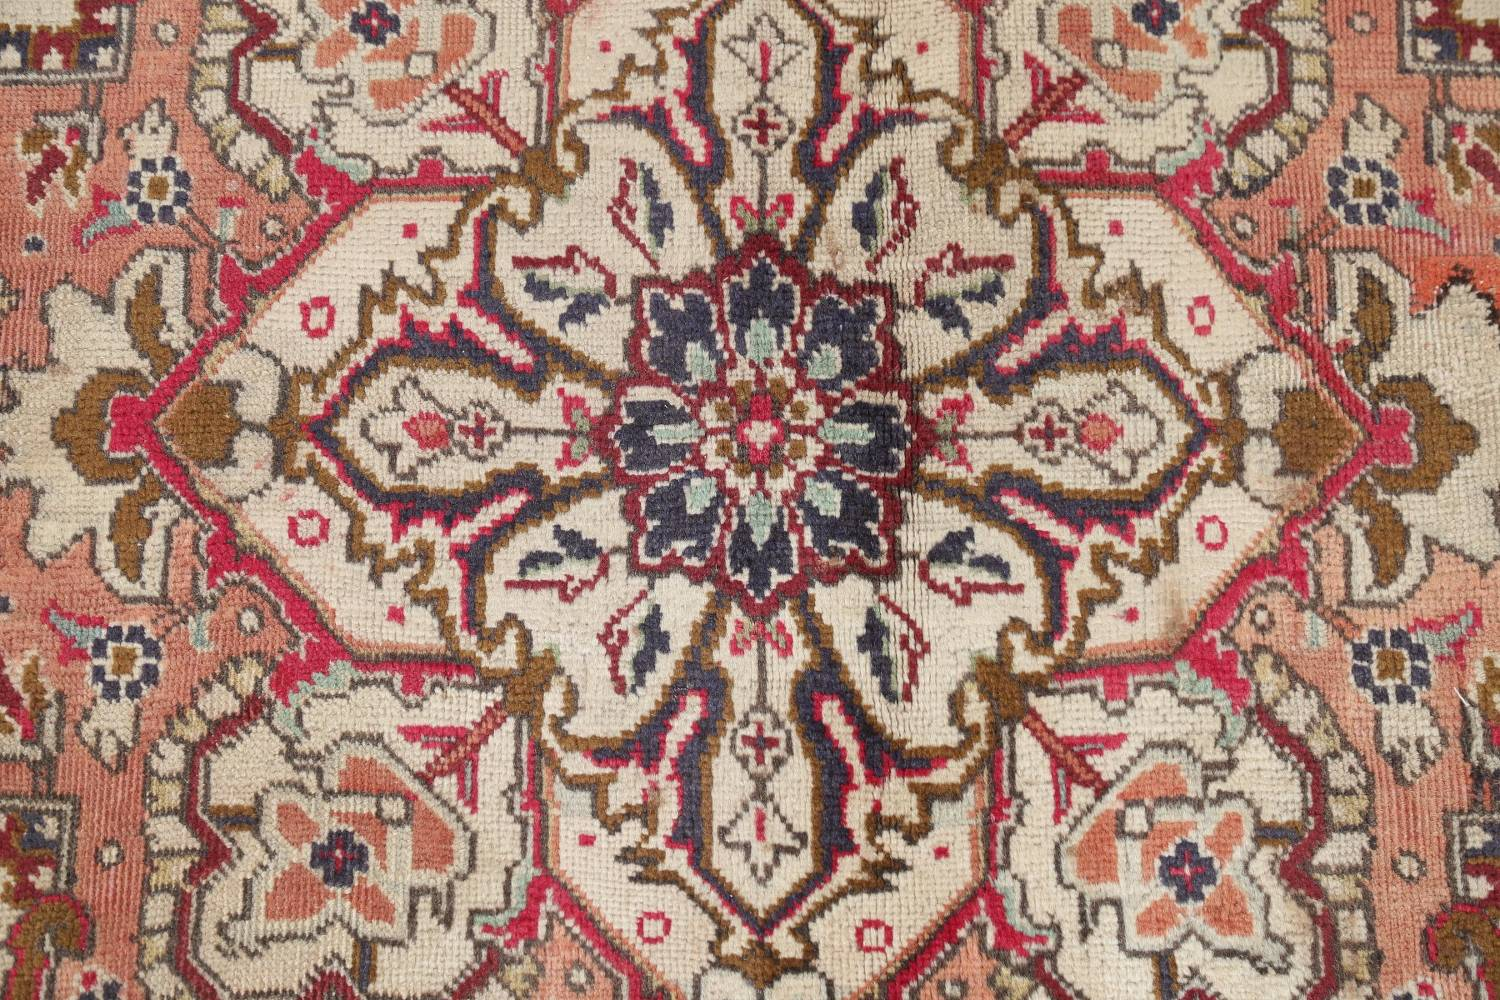 One-of-a-Kind Antique Heriz Serapi Persian Hand-Knotted 7x9 Wool Area Rug image 8